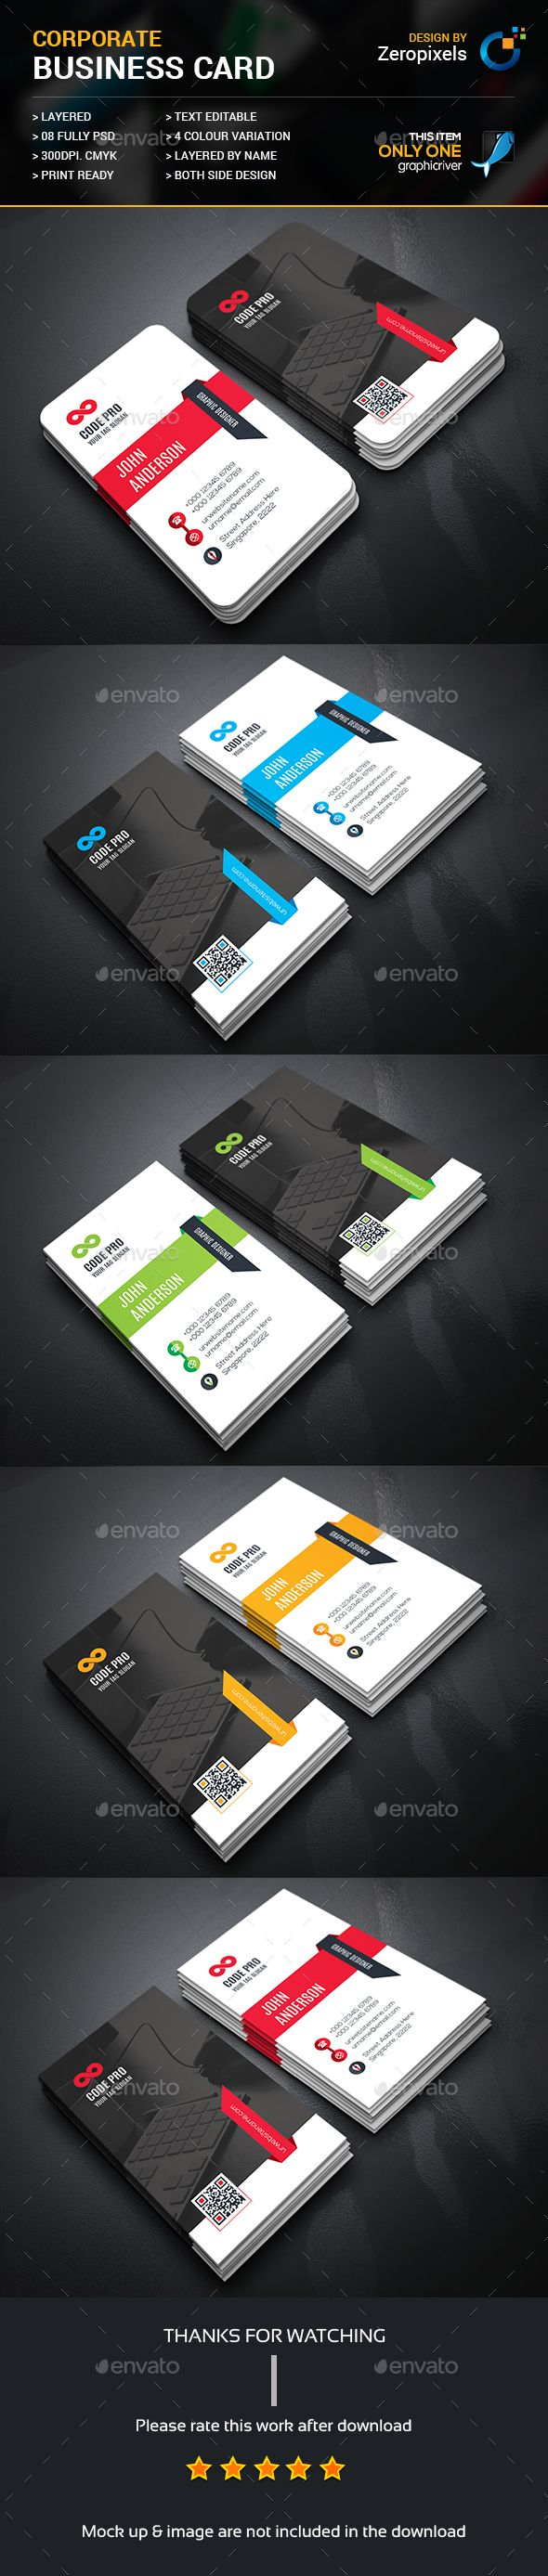 Free business card templates buy business card template most used that way all related business documents have the same look and feel reheart Images